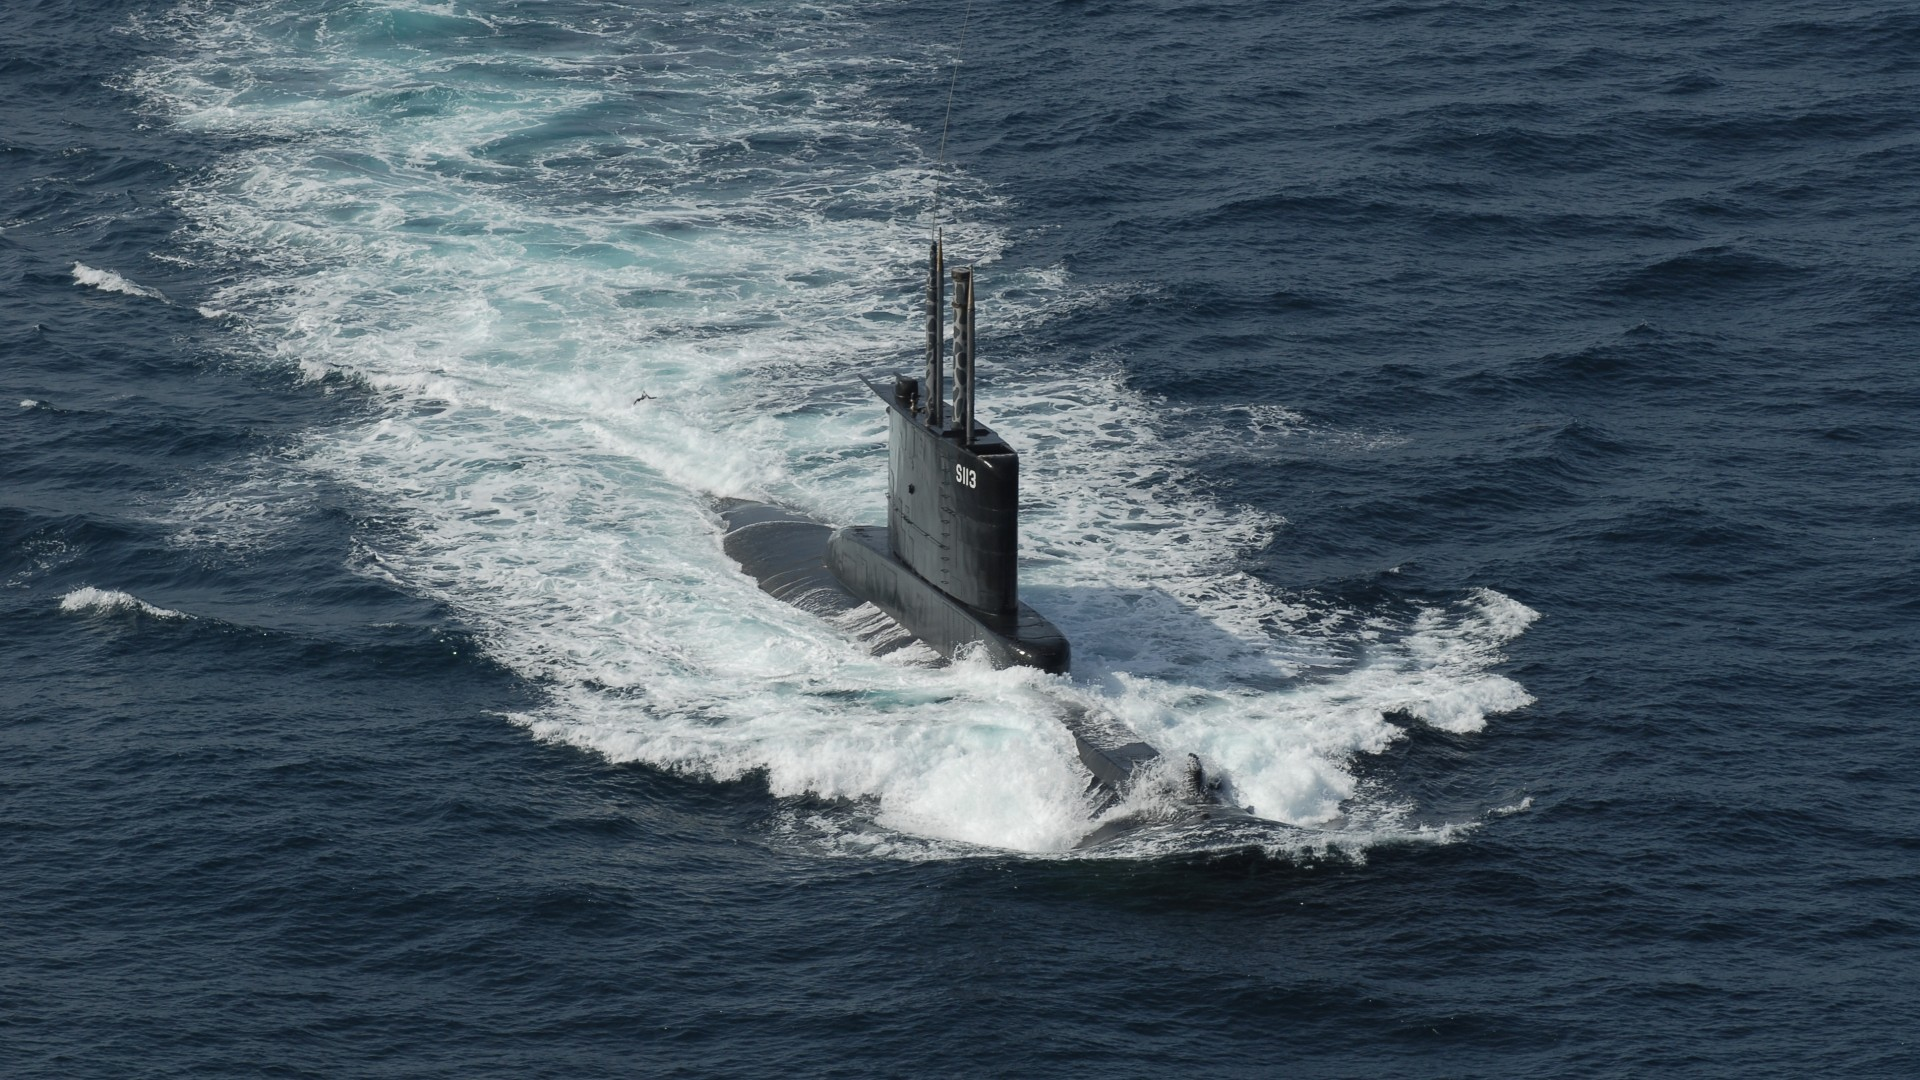 Submarine at sea wallpapers and images   wallpapers pictures photos 1920x1080